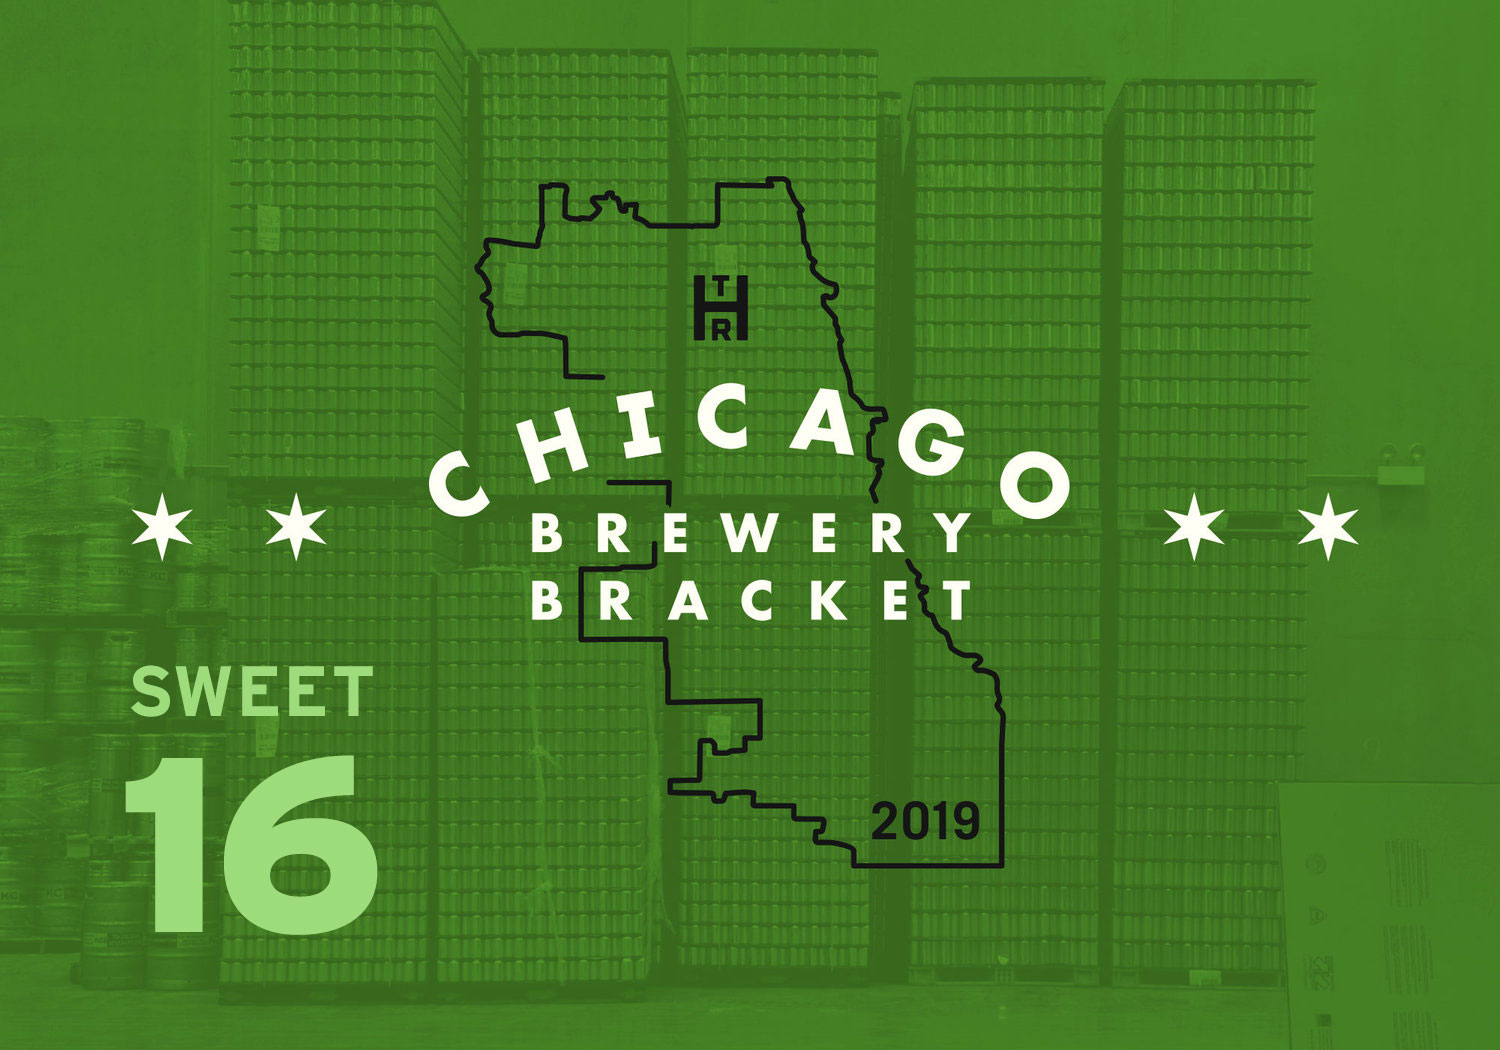 ChicagoBreweryBracket_2019-16.jpg